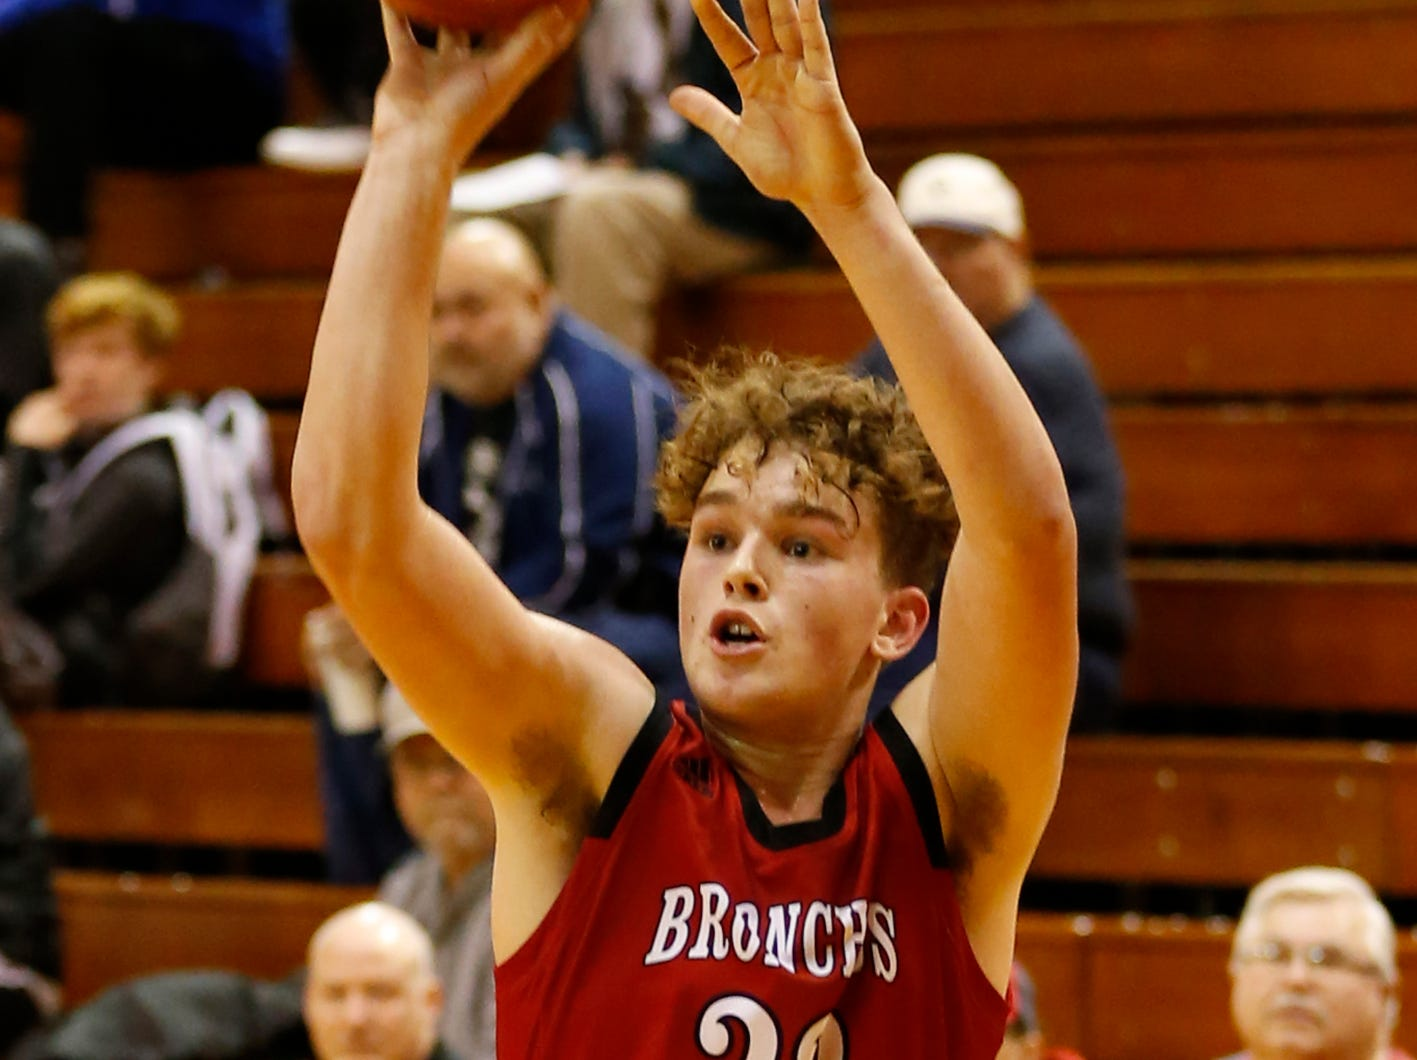 Ashton Beaver of Lafayette Jeff with a three-point shot against Central Catholic in the championship of the Franciscan Health Hoops Classic Saturday, December 1, 2018, at Lafayette Jeff. Jeff defeated Central Catholic 76-73 for the title.